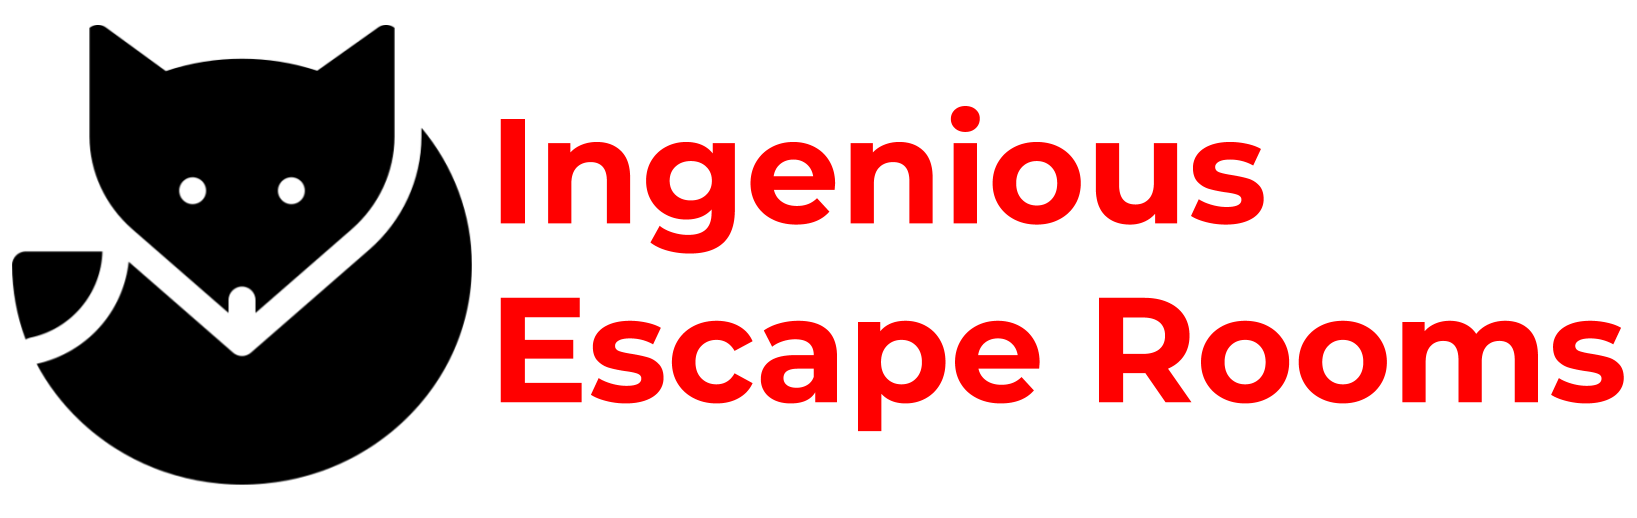 Ingenious Escape Rooms |   Corporate events